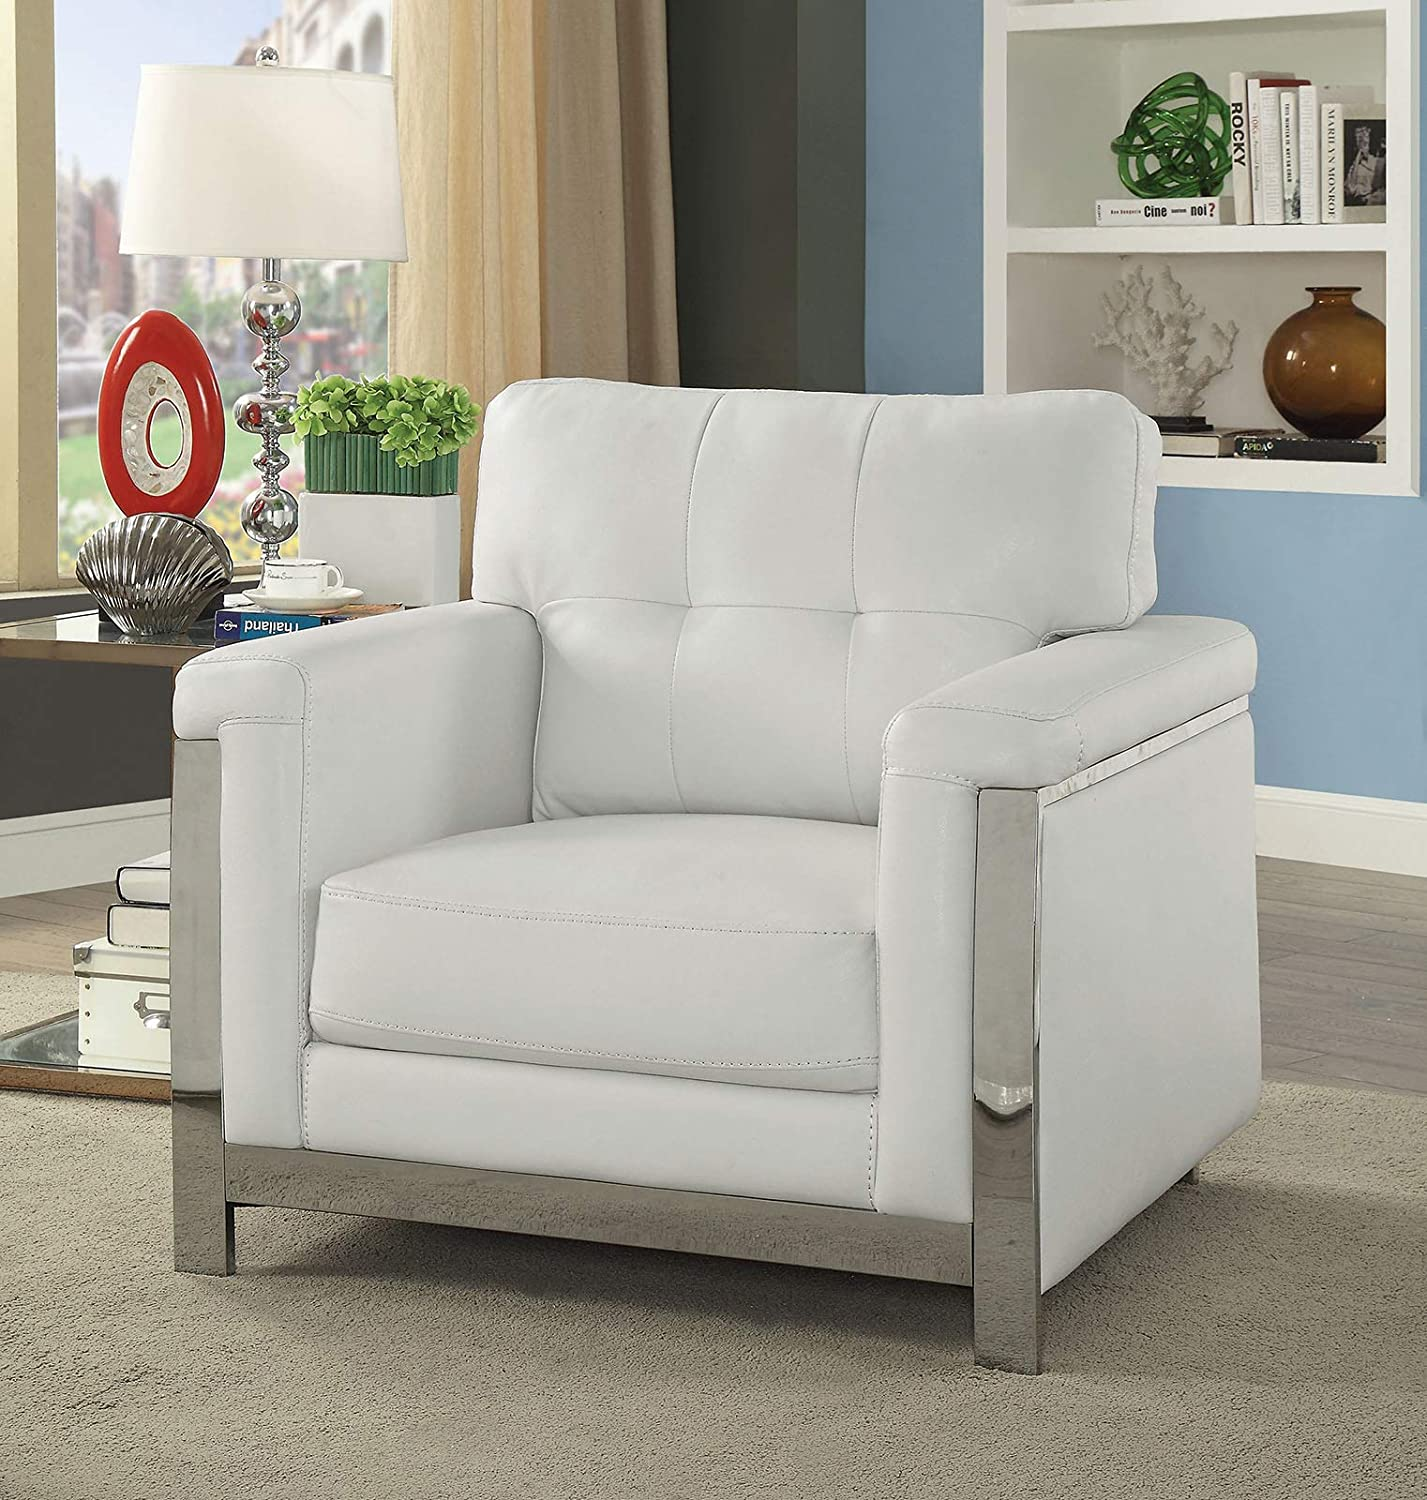 CDM product Benzara BM181364 Tufted Leather Upholstered Chair, White big image